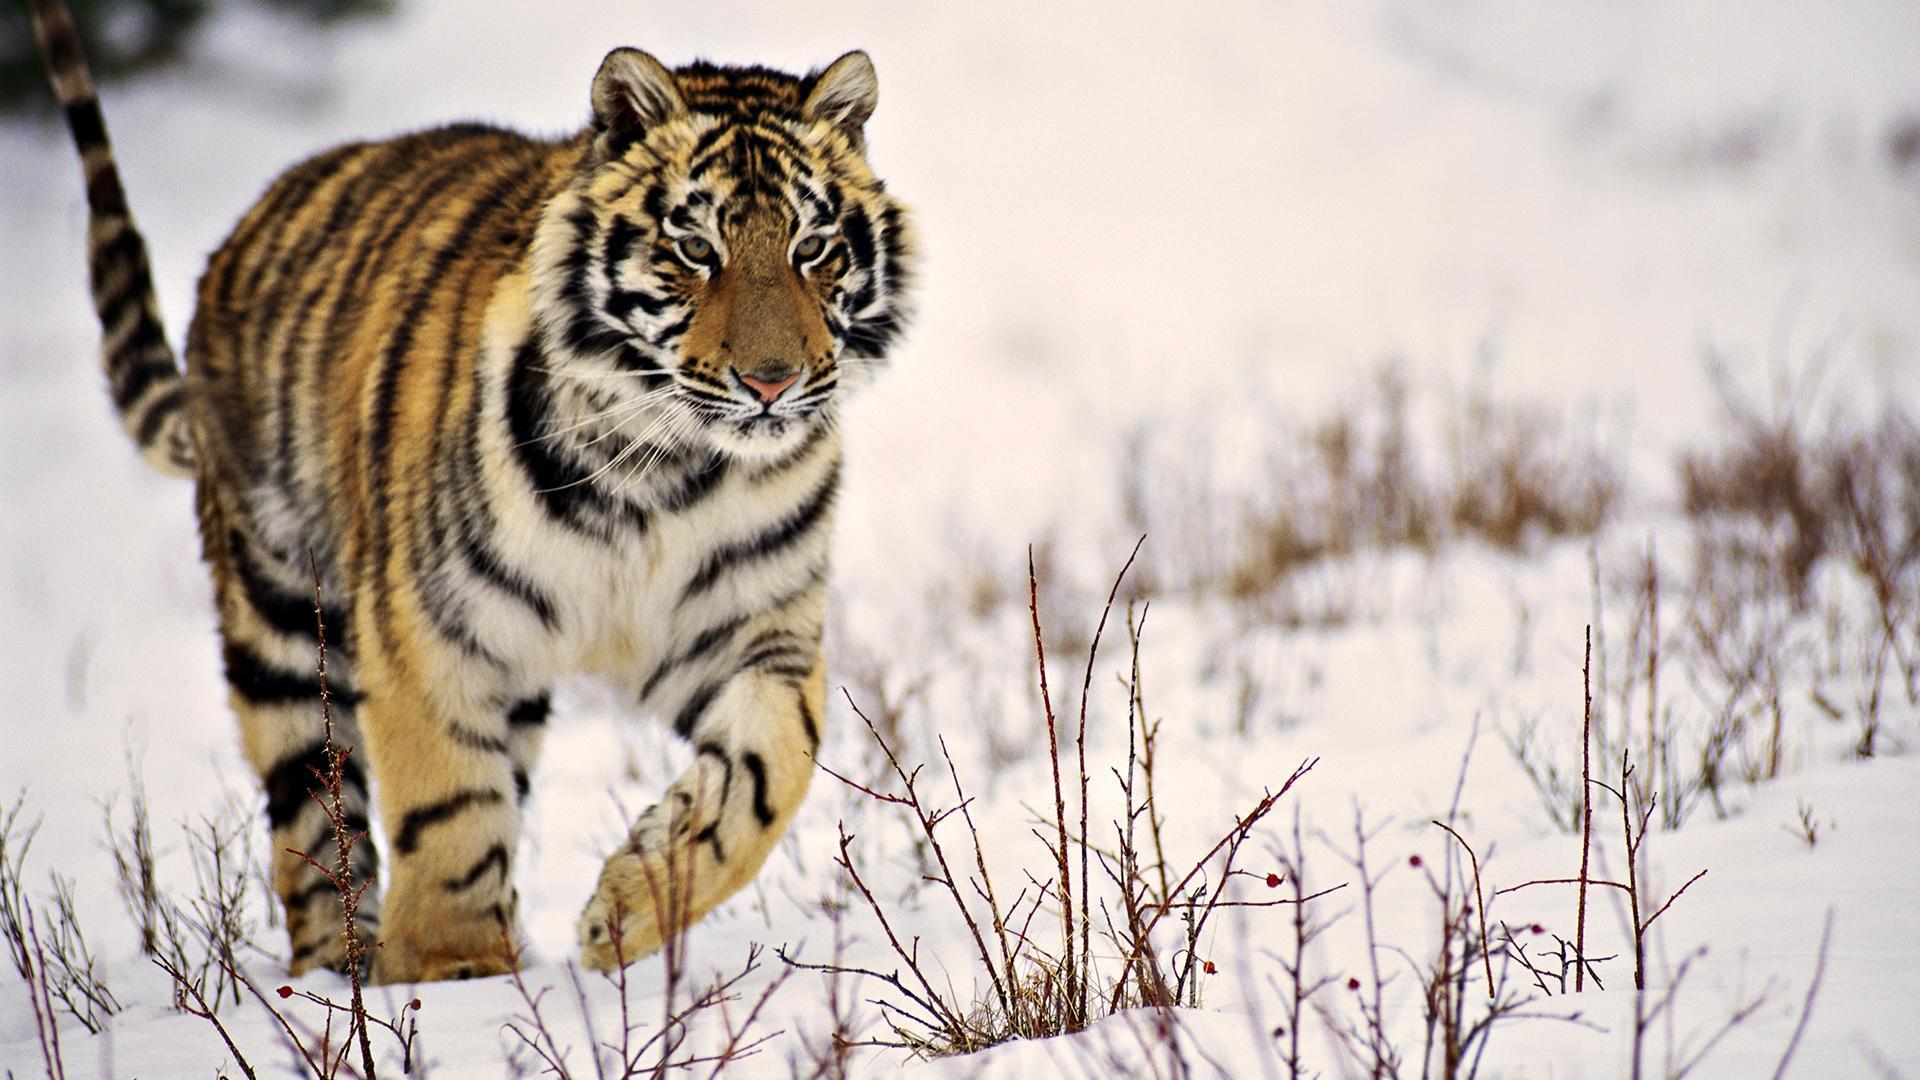 Baby Tiger Wallpapers Desktop Android Fire White Roar Lion For ...